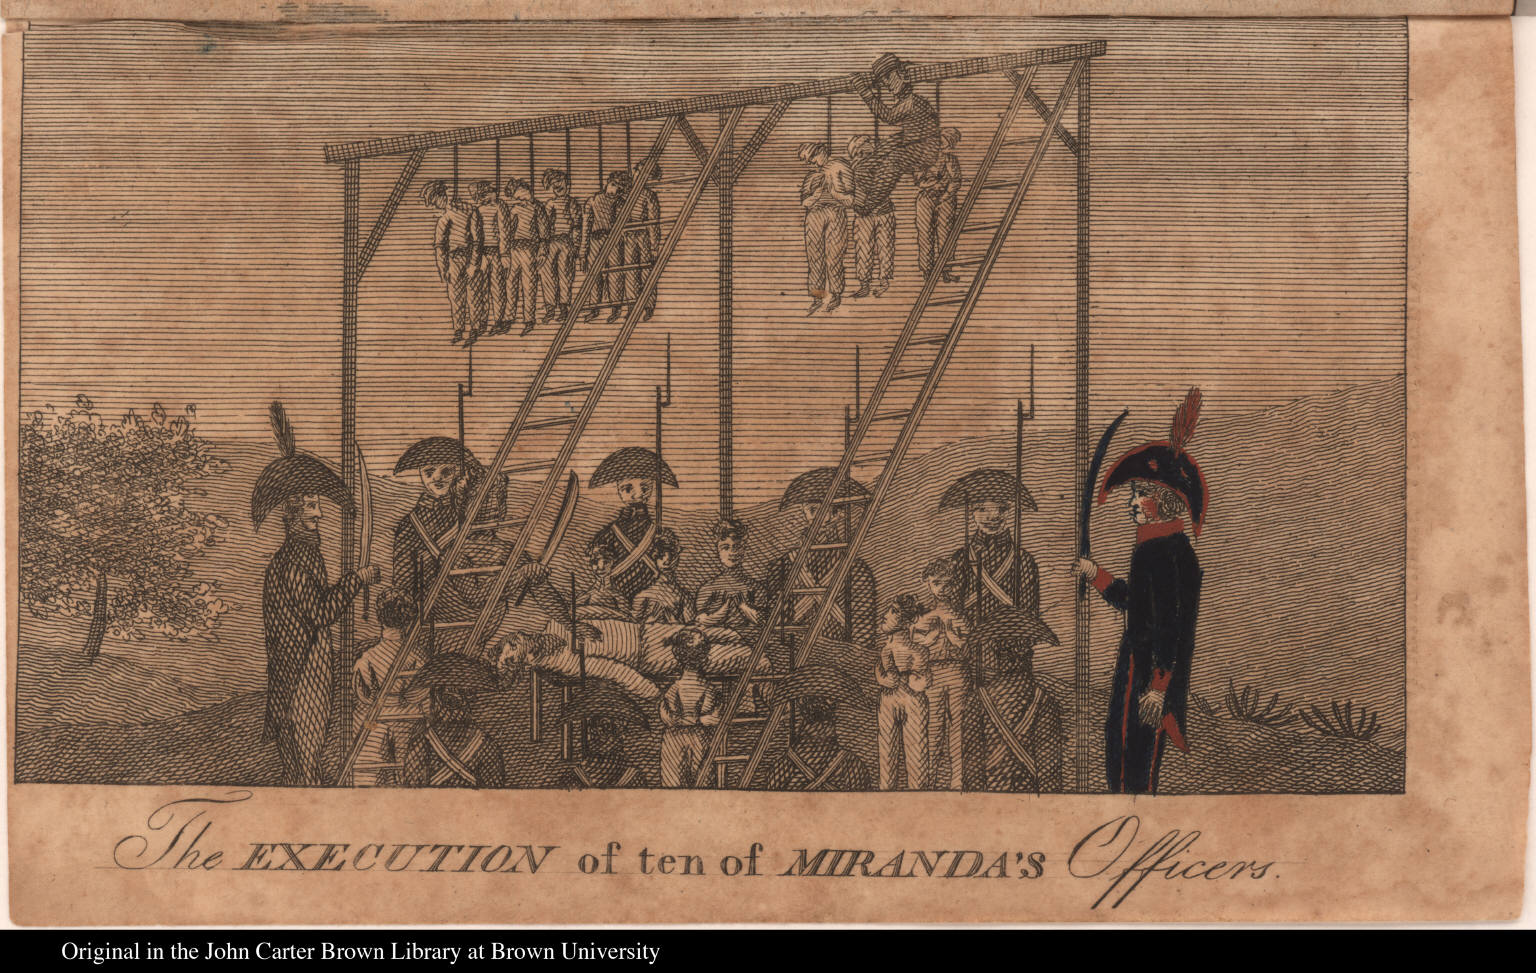 The execution of ten of Miranda's Officers.